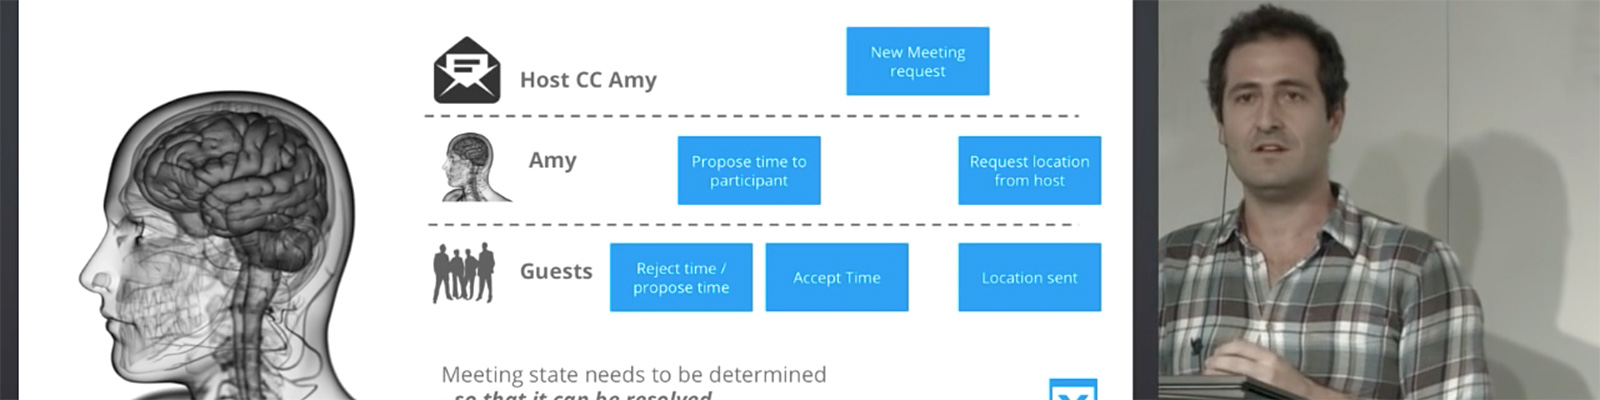 Building Amy: The Email-based Virtual Assistant by x.ai(Hakka Labs)